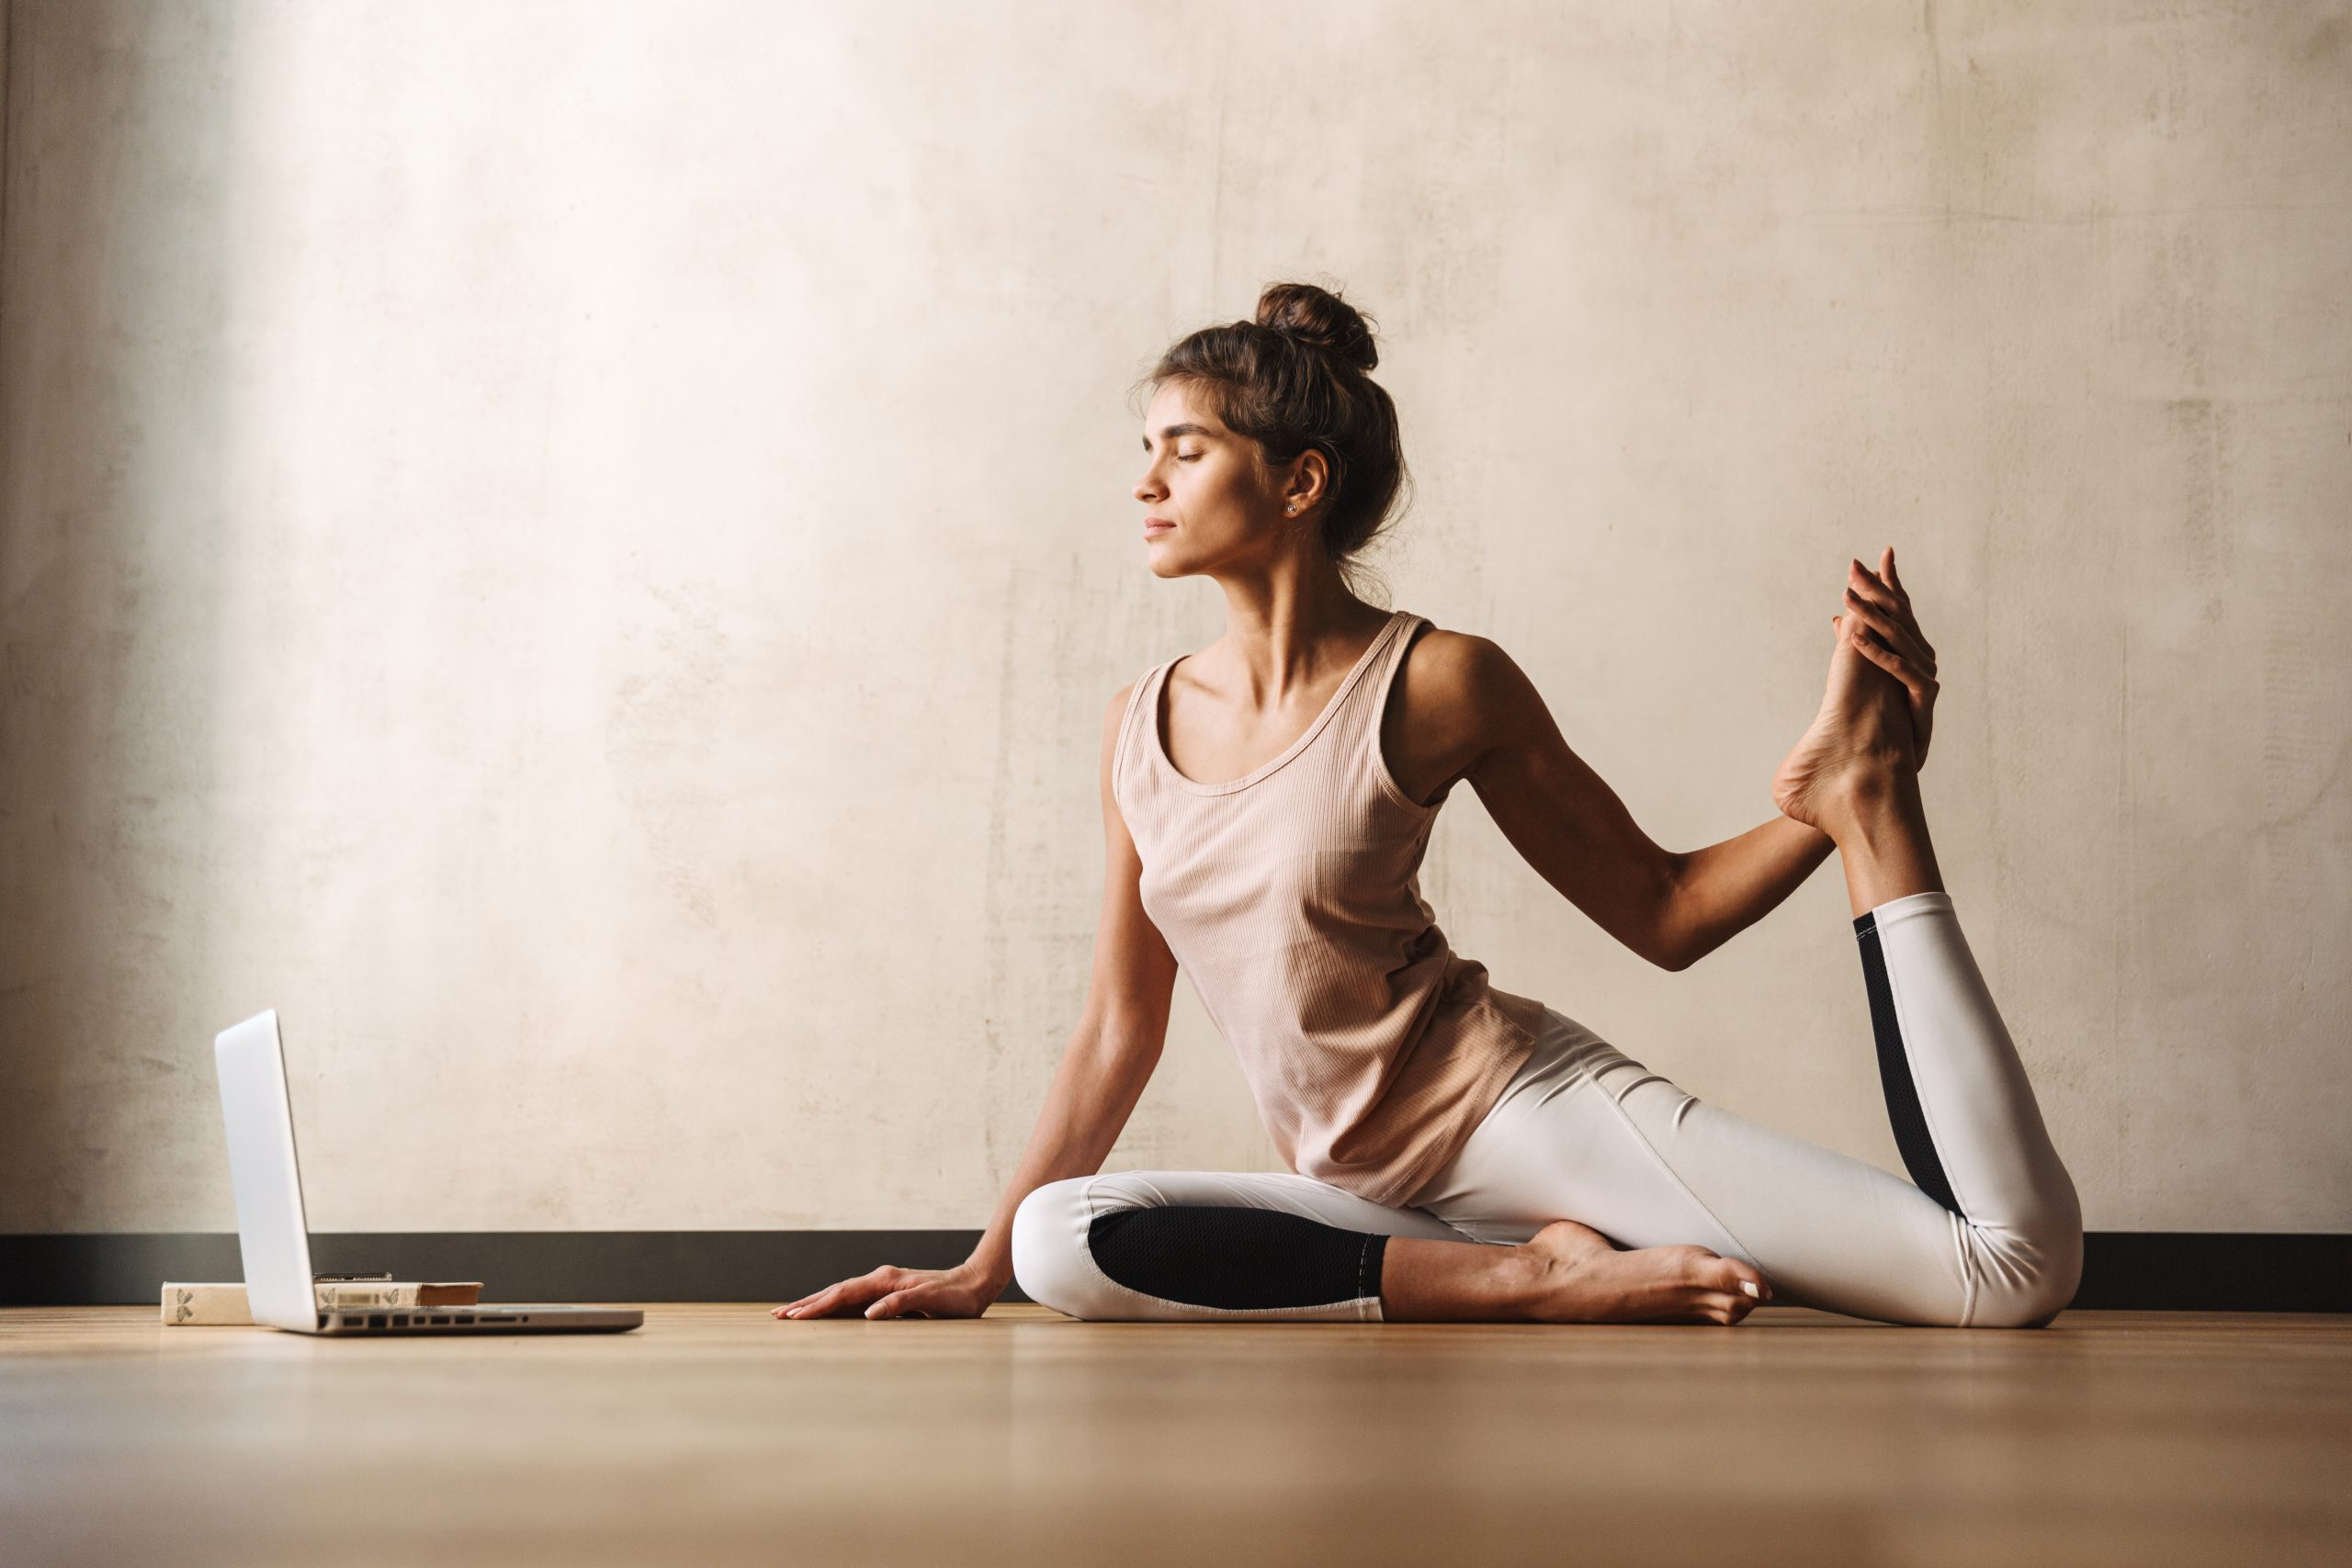 Yoga for Beginners: 7 Tips for Starting Yoga for the First Time